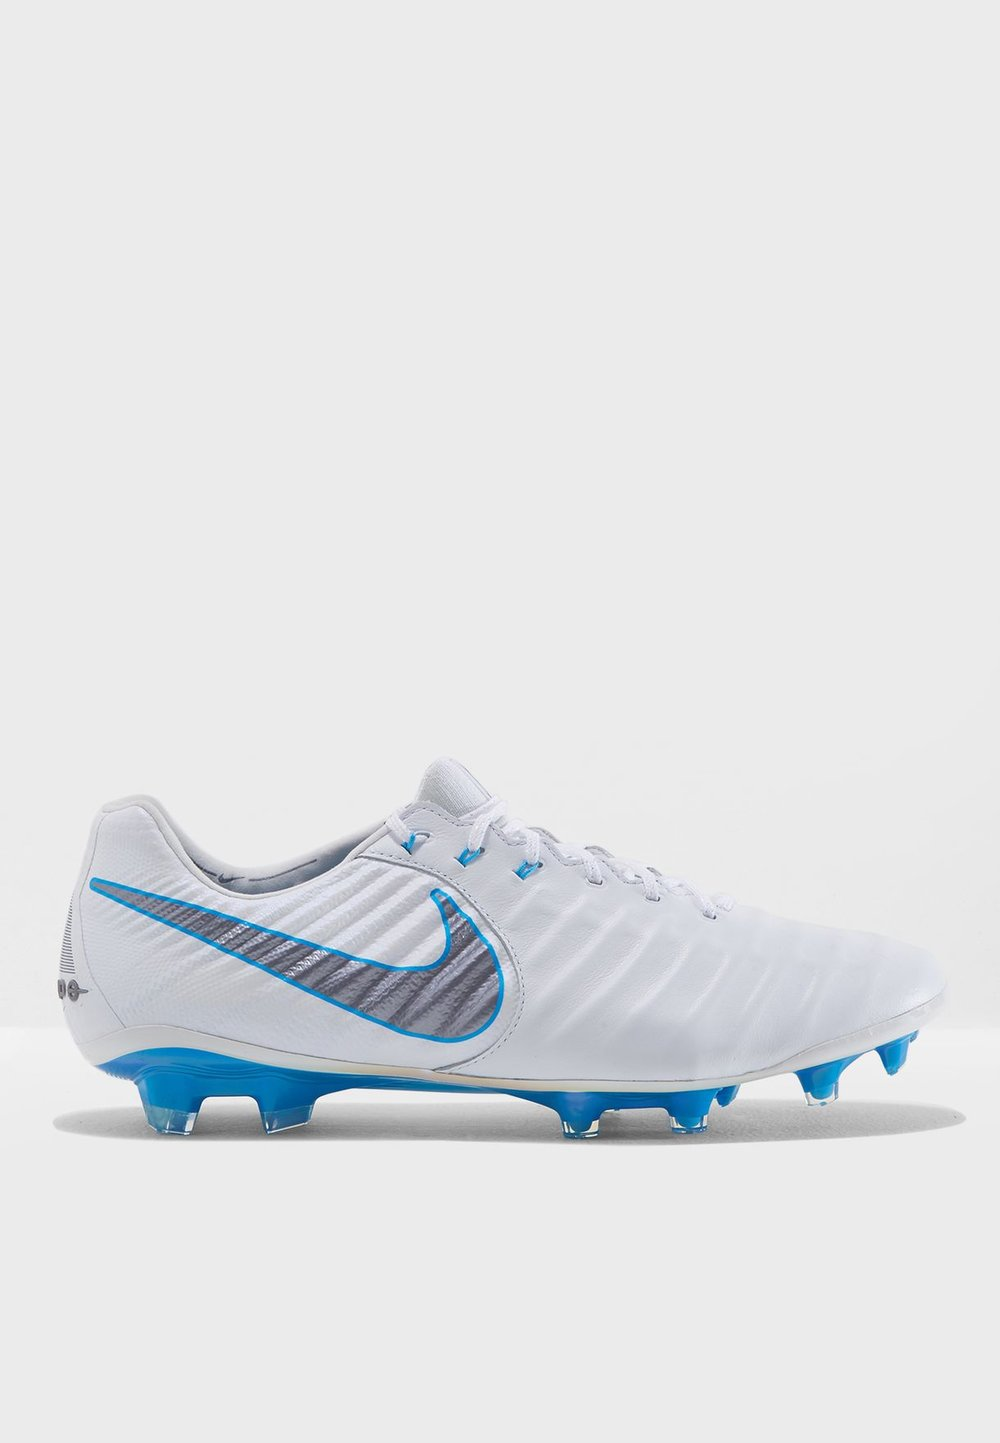 Nike  football boots  975aed/sar